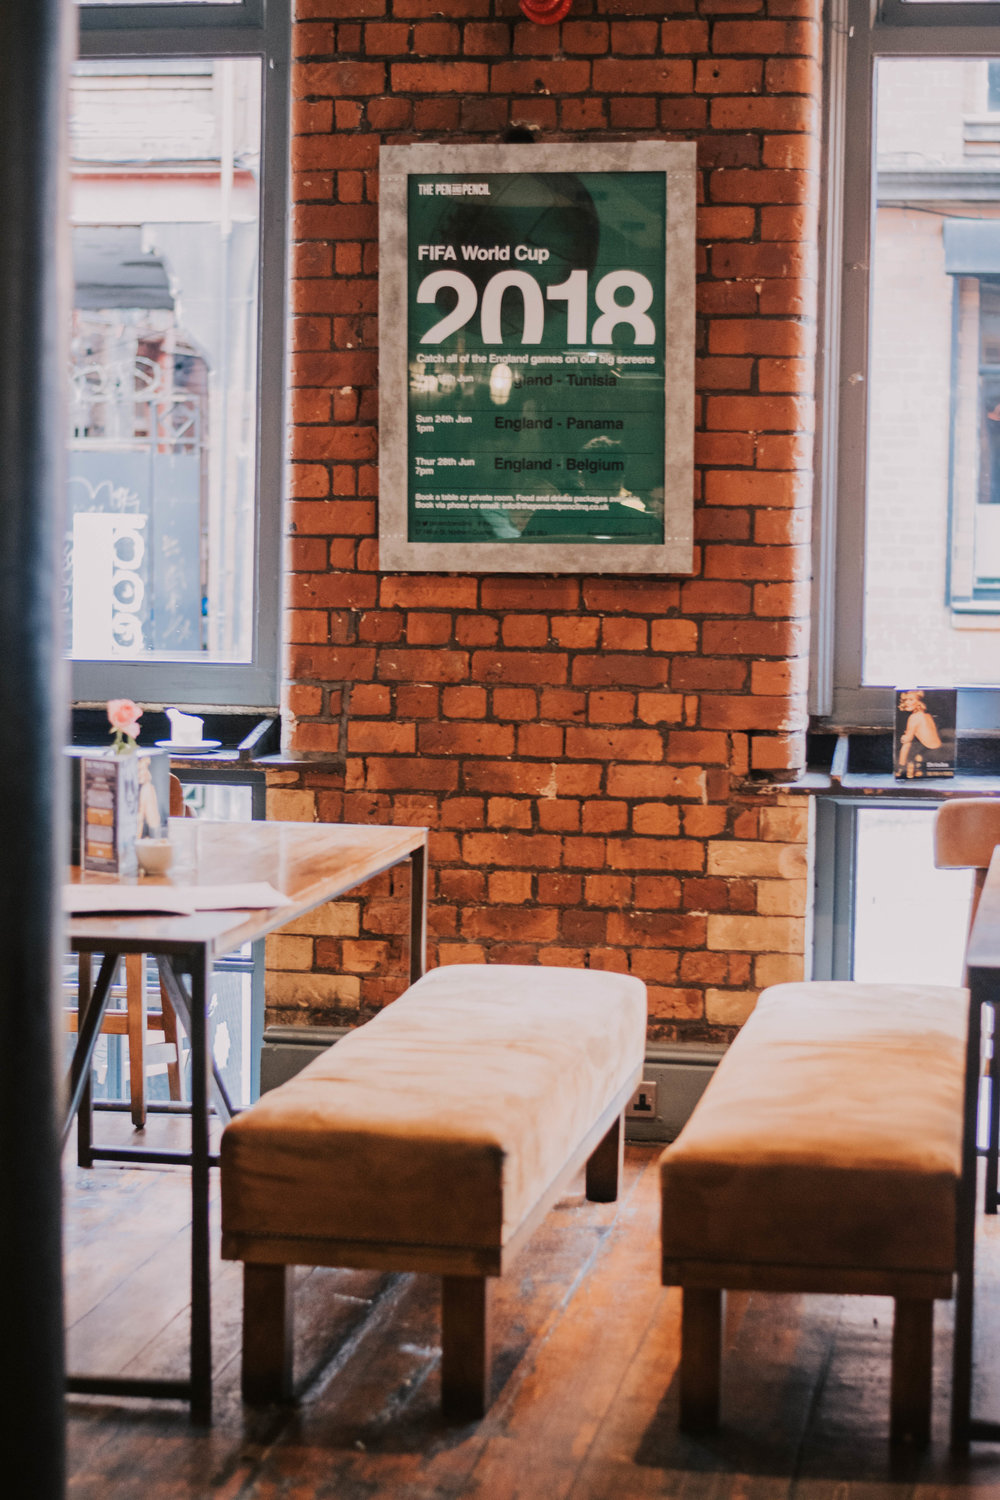 brunch at pen and pencil northern quarter. life of ellie grace. manchester, uk beauty and style blog. manchester blog. uk beauty blog. uk lifestyle blog. manchester lifestyle blog.